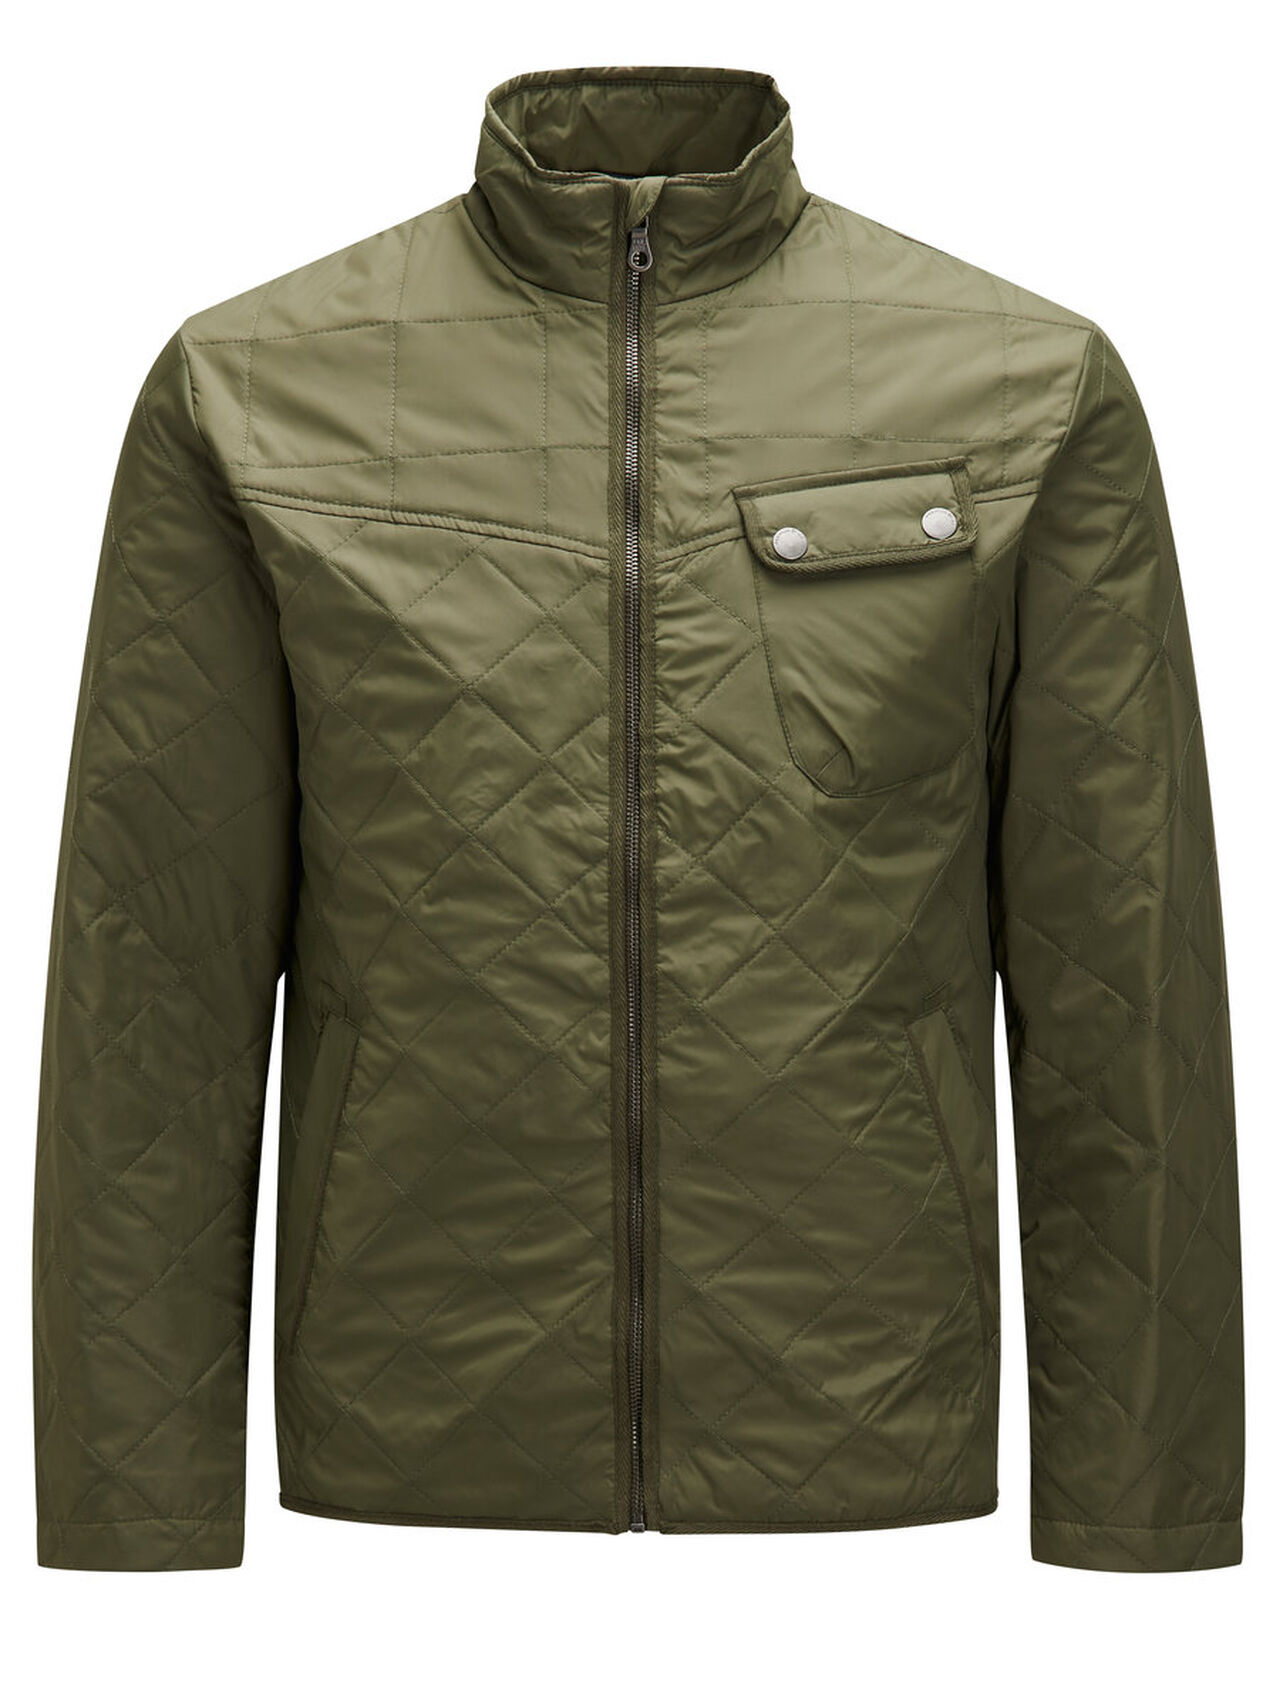 JACK & JONES Gewatteerde Jas Heren Green thumbnail